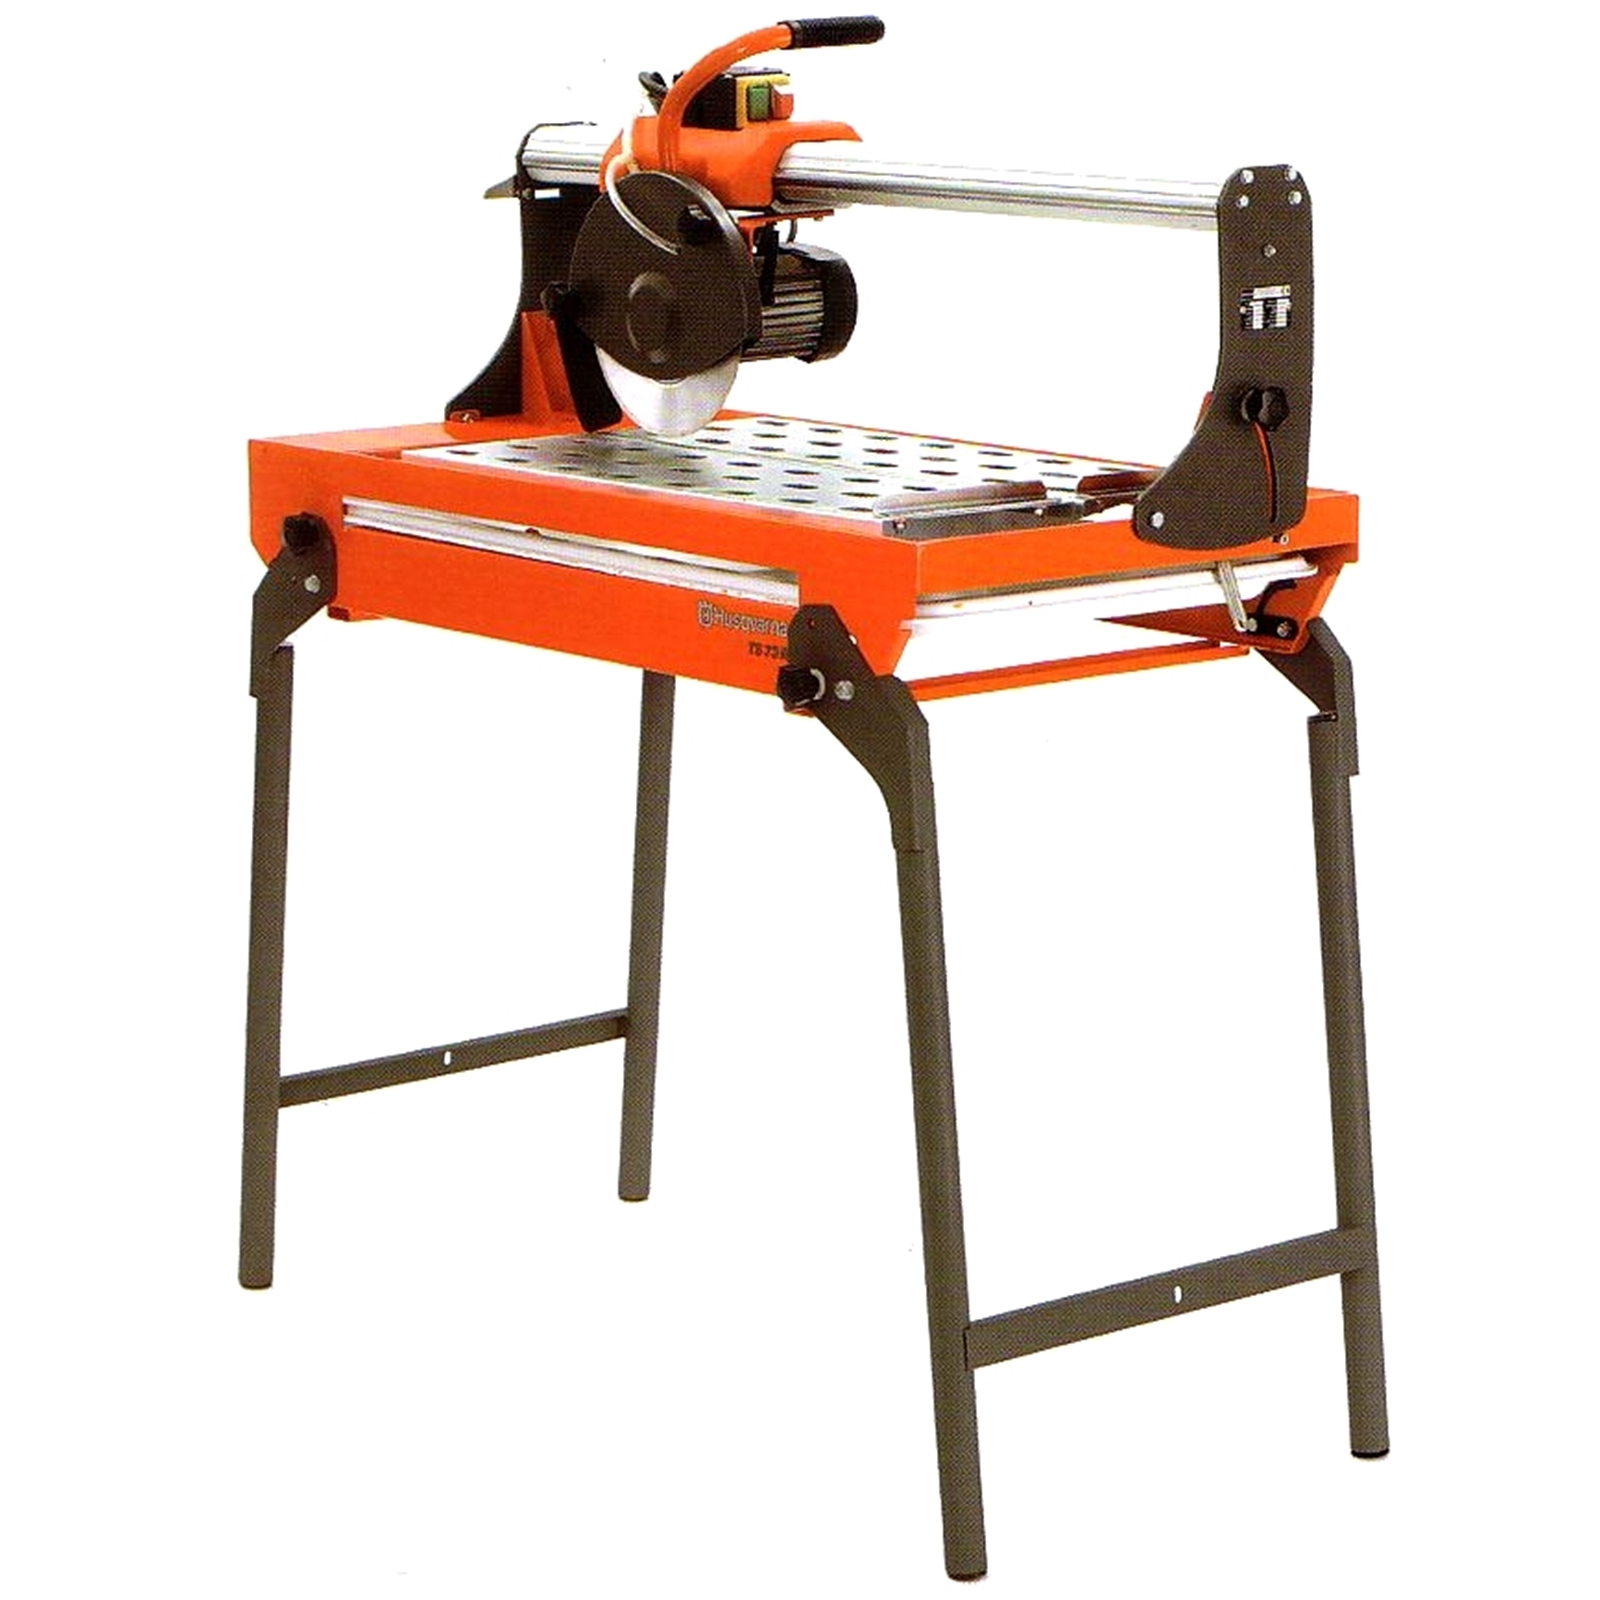 For Hire: Electric Tile Saw Table - 4hr